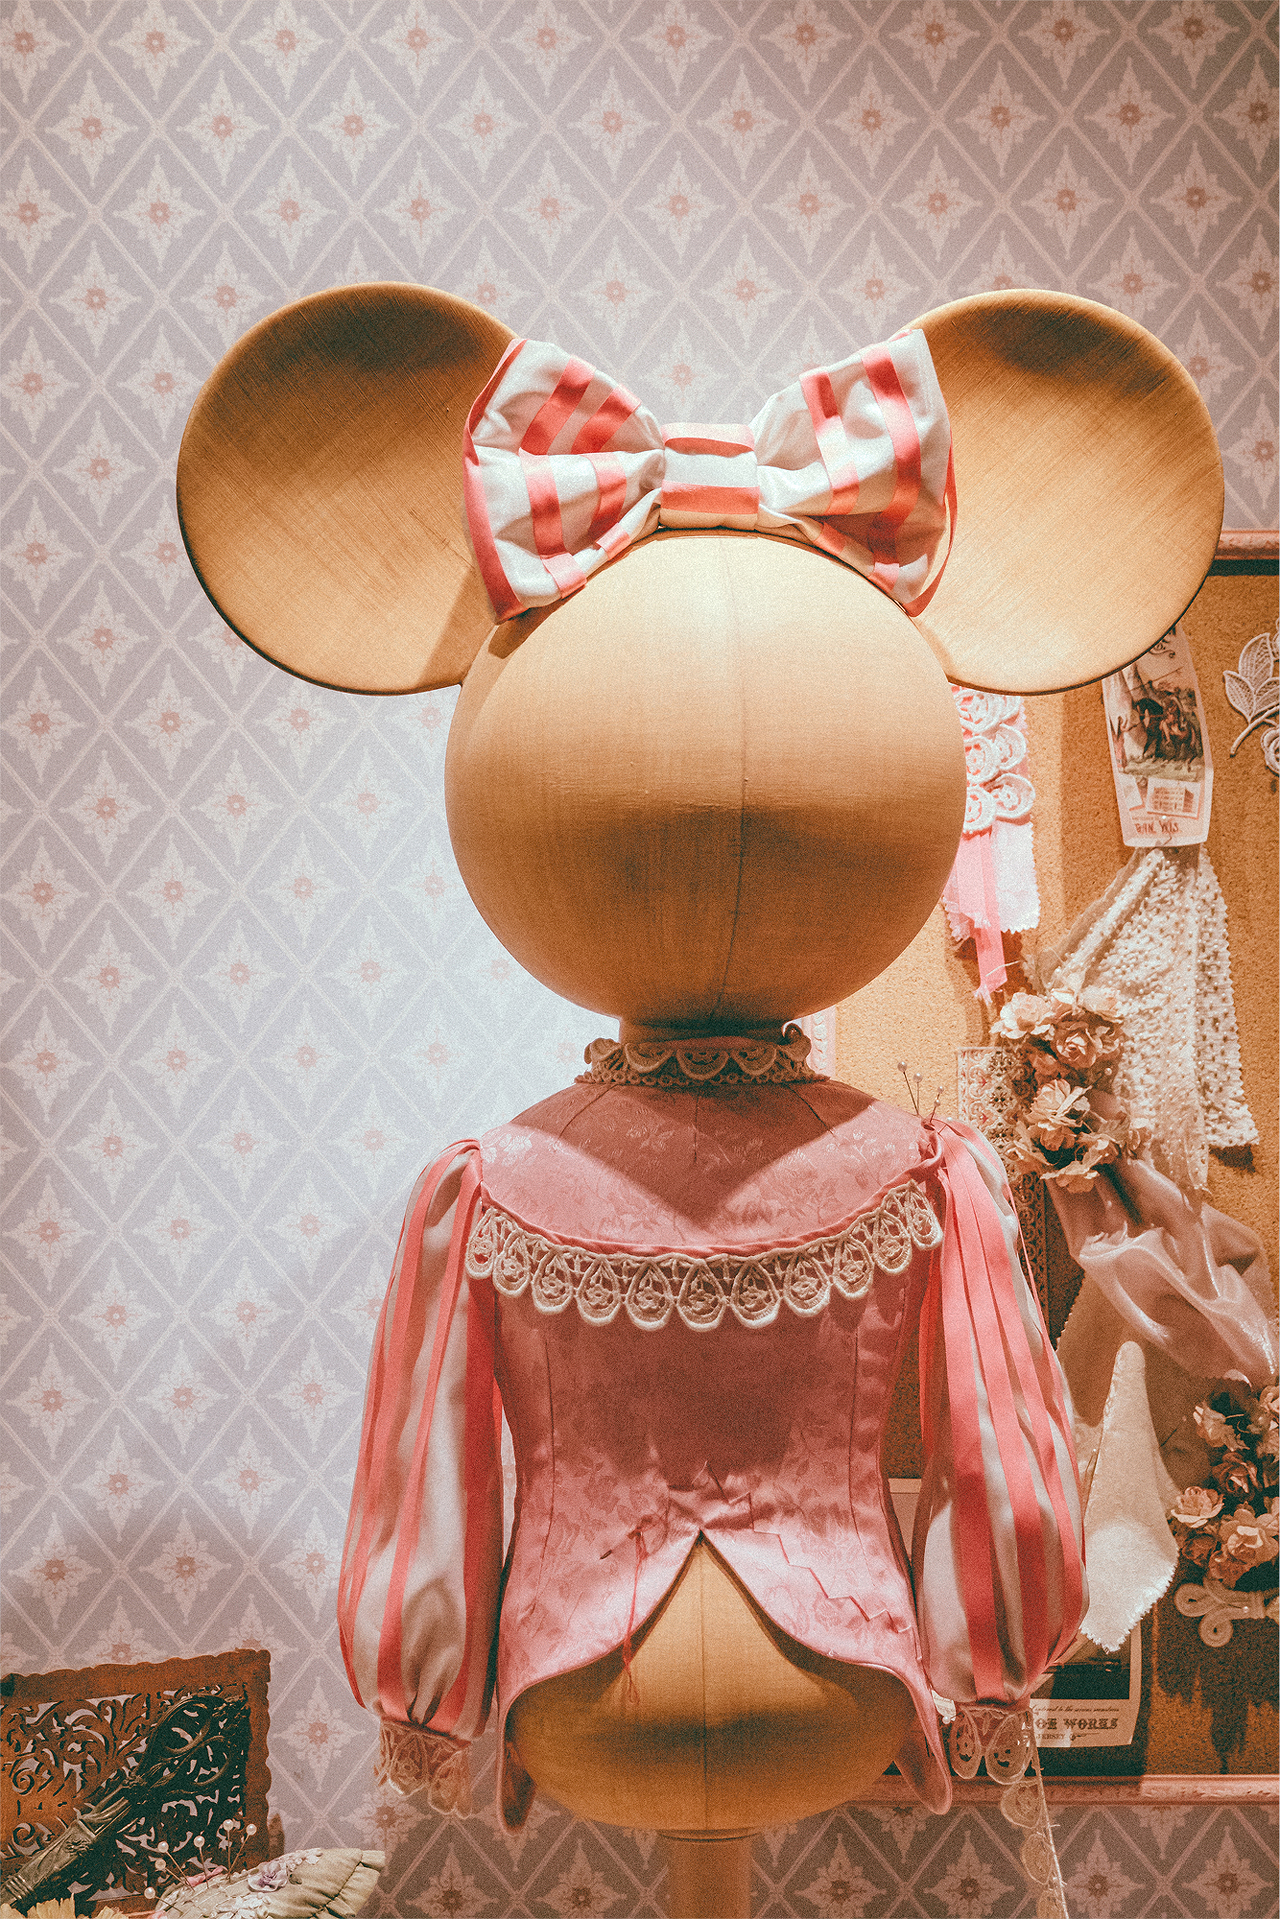 In World Bazaar, Minnie is a seamstress for Disney royalty.